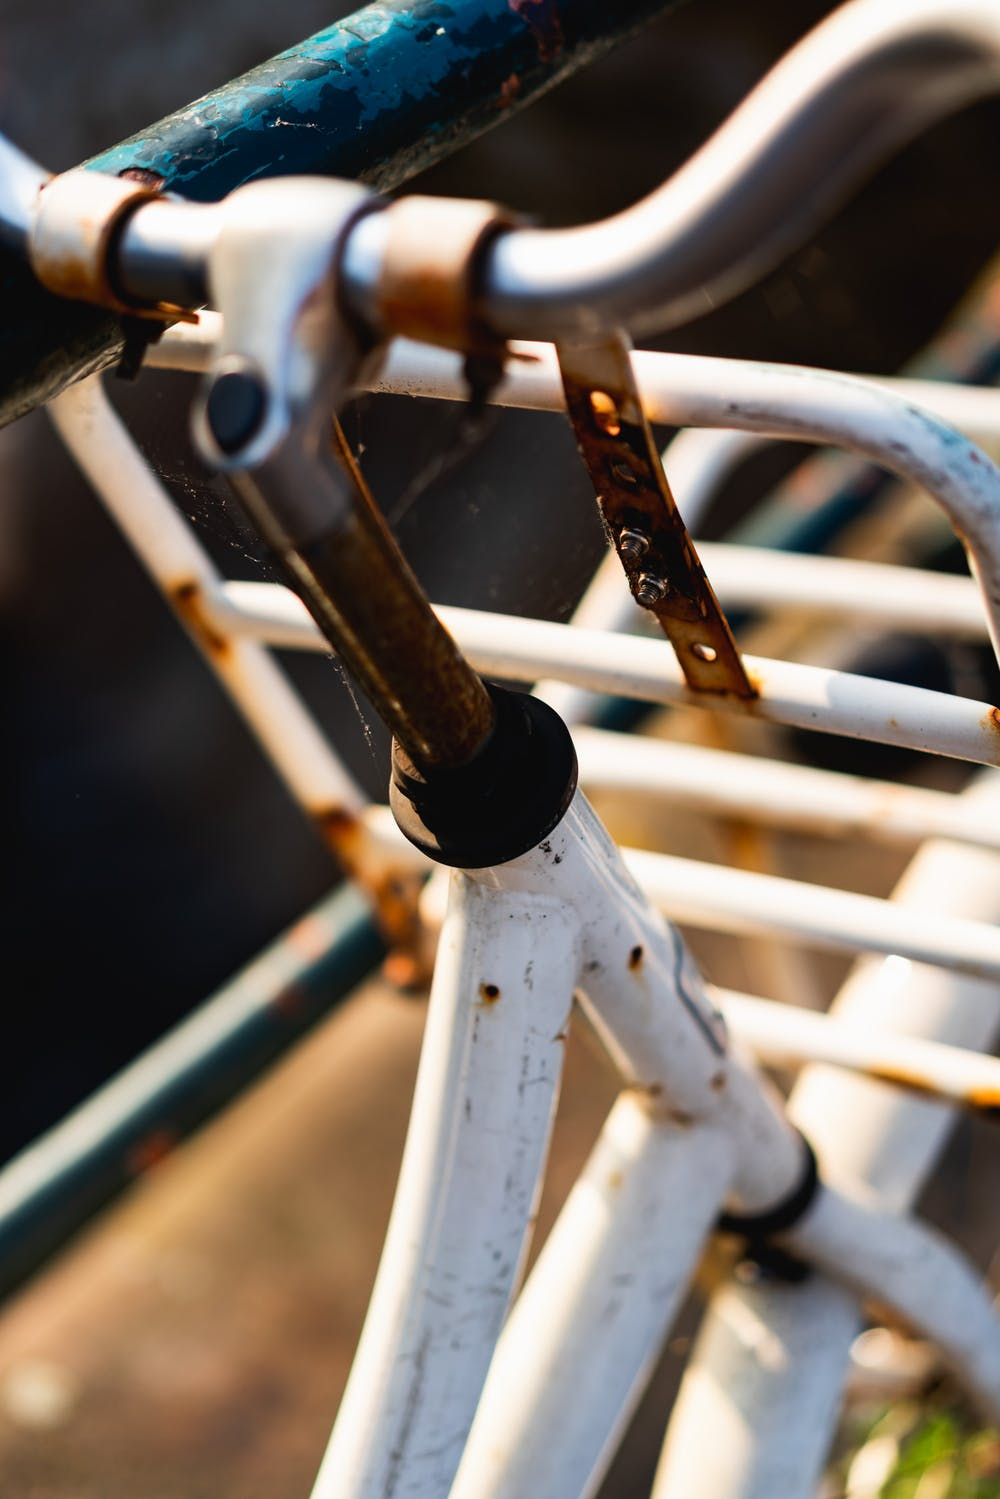 Close up of a rusty bike